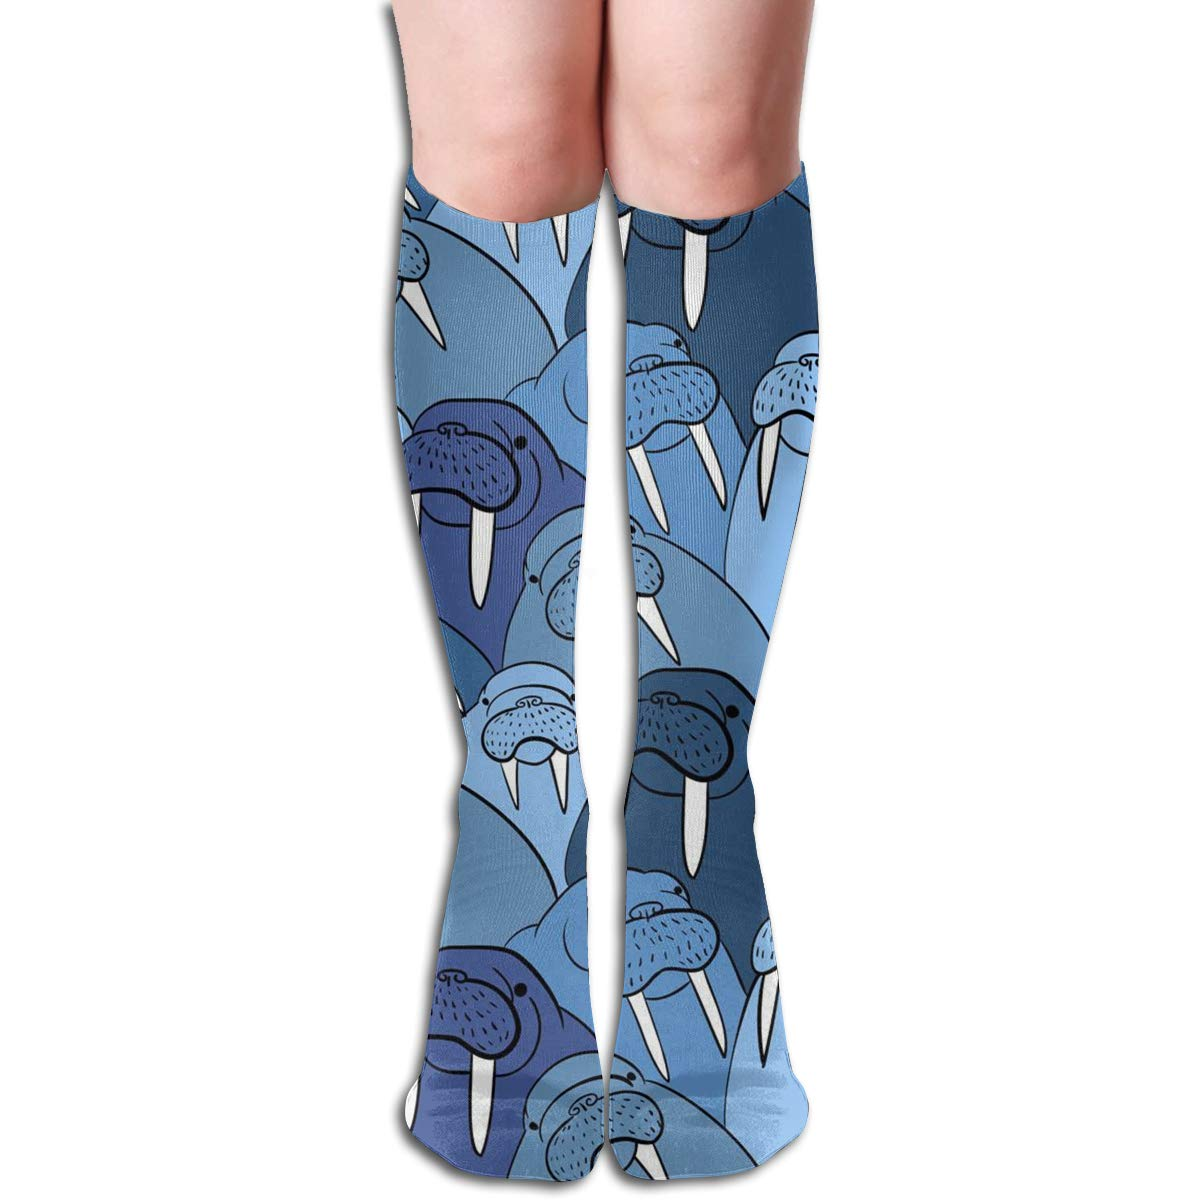 Cartoon Purple Flower Compression Socks For Women Casual Fashion Crew Socks